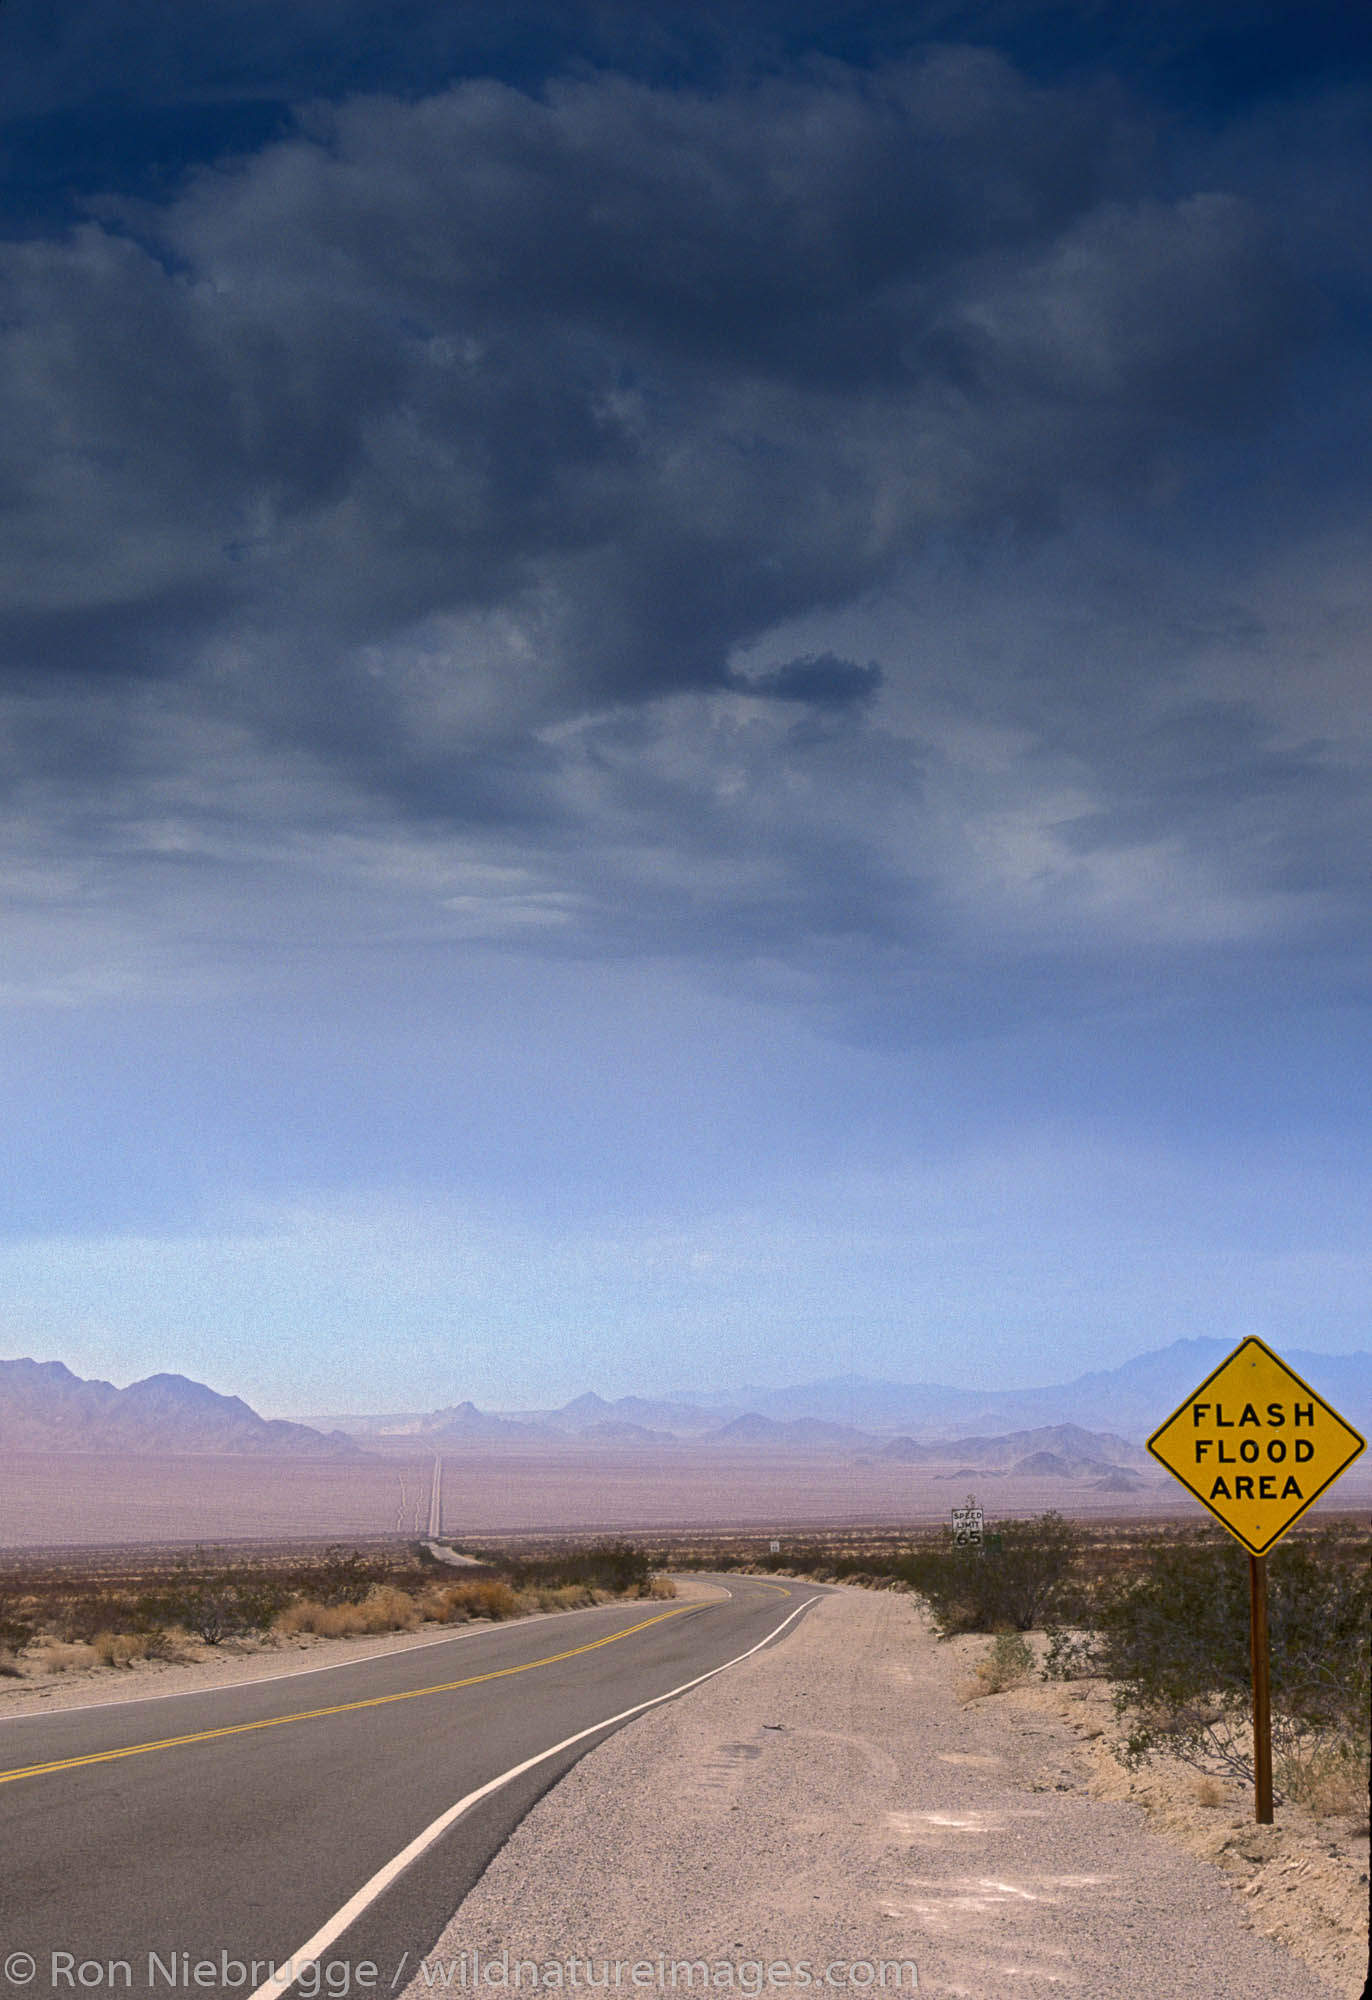 Flash flood warning signs during stormy weather on Highway 62, Mojave Desert, California.